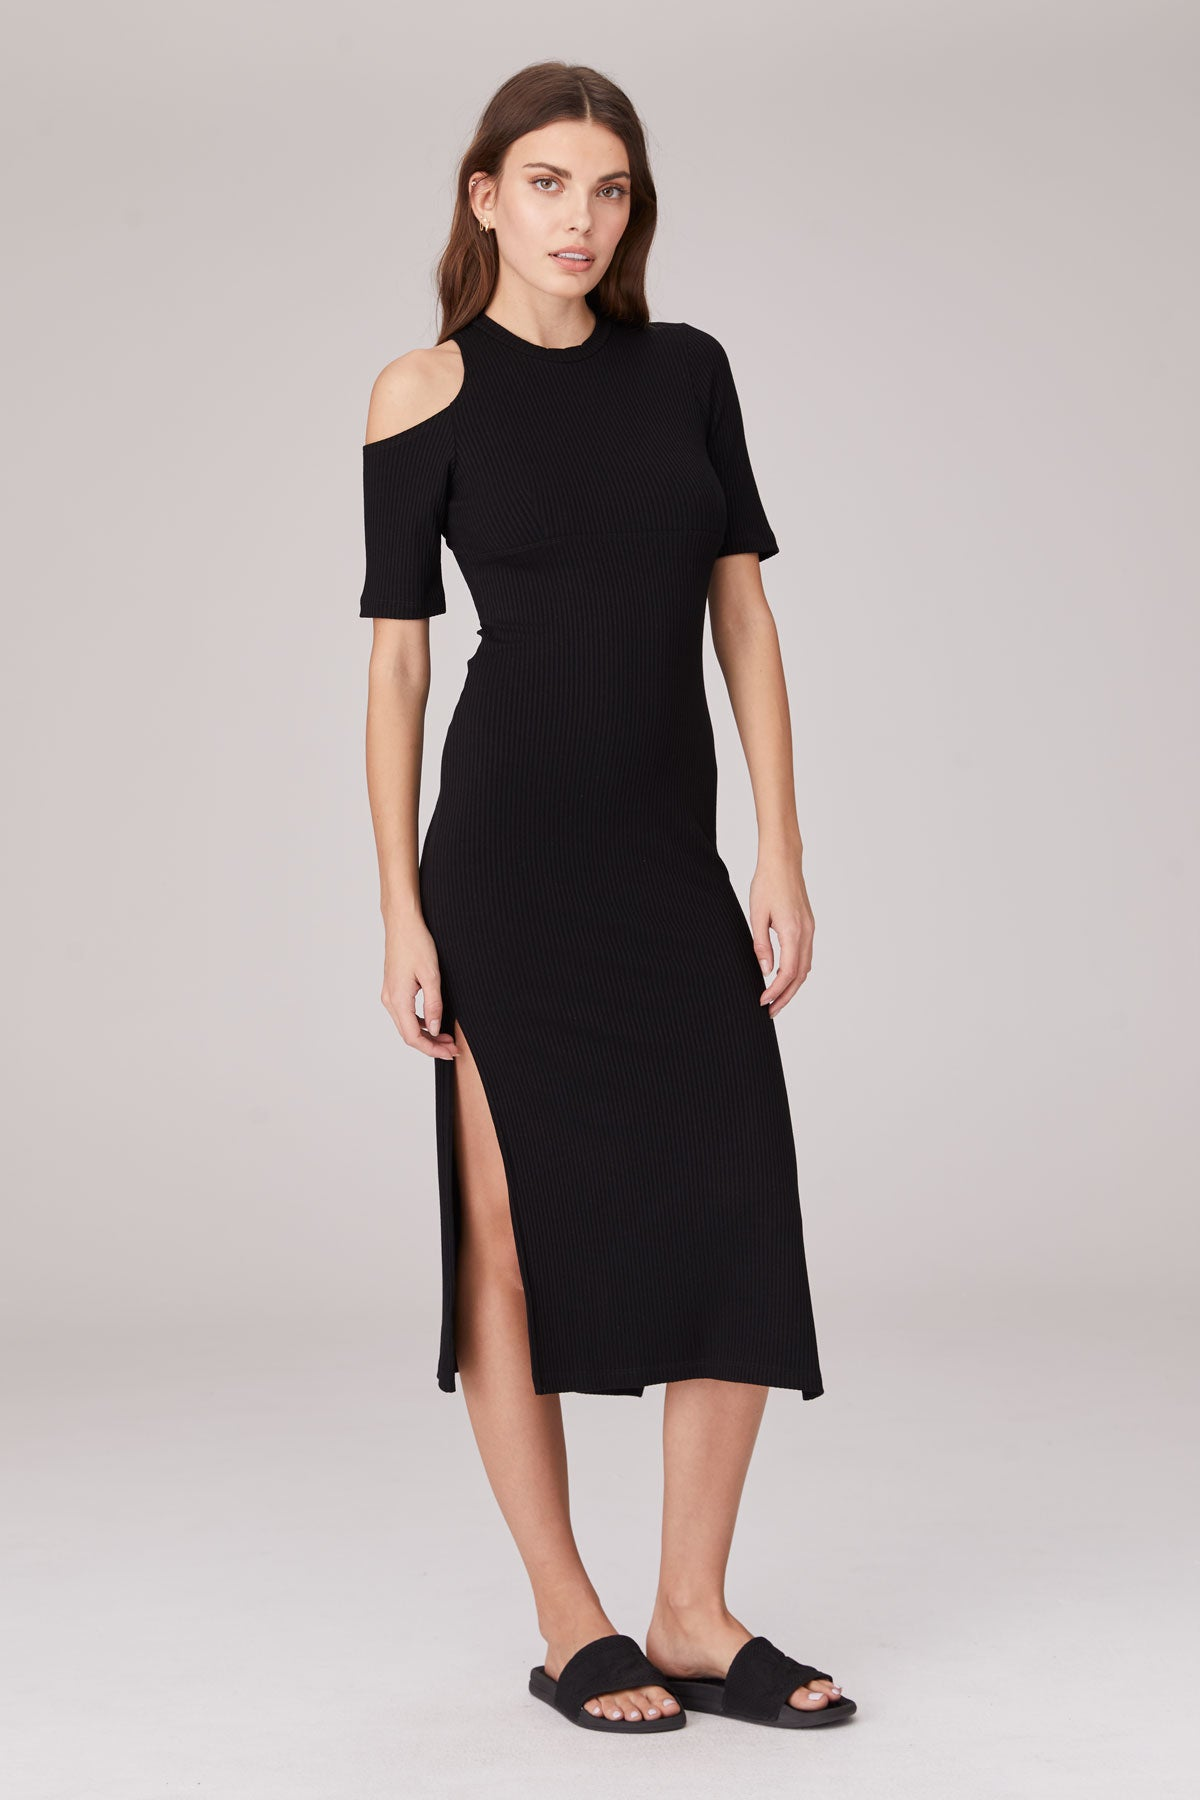 LNA Lynne Black Rib Dress with shoulder cutout